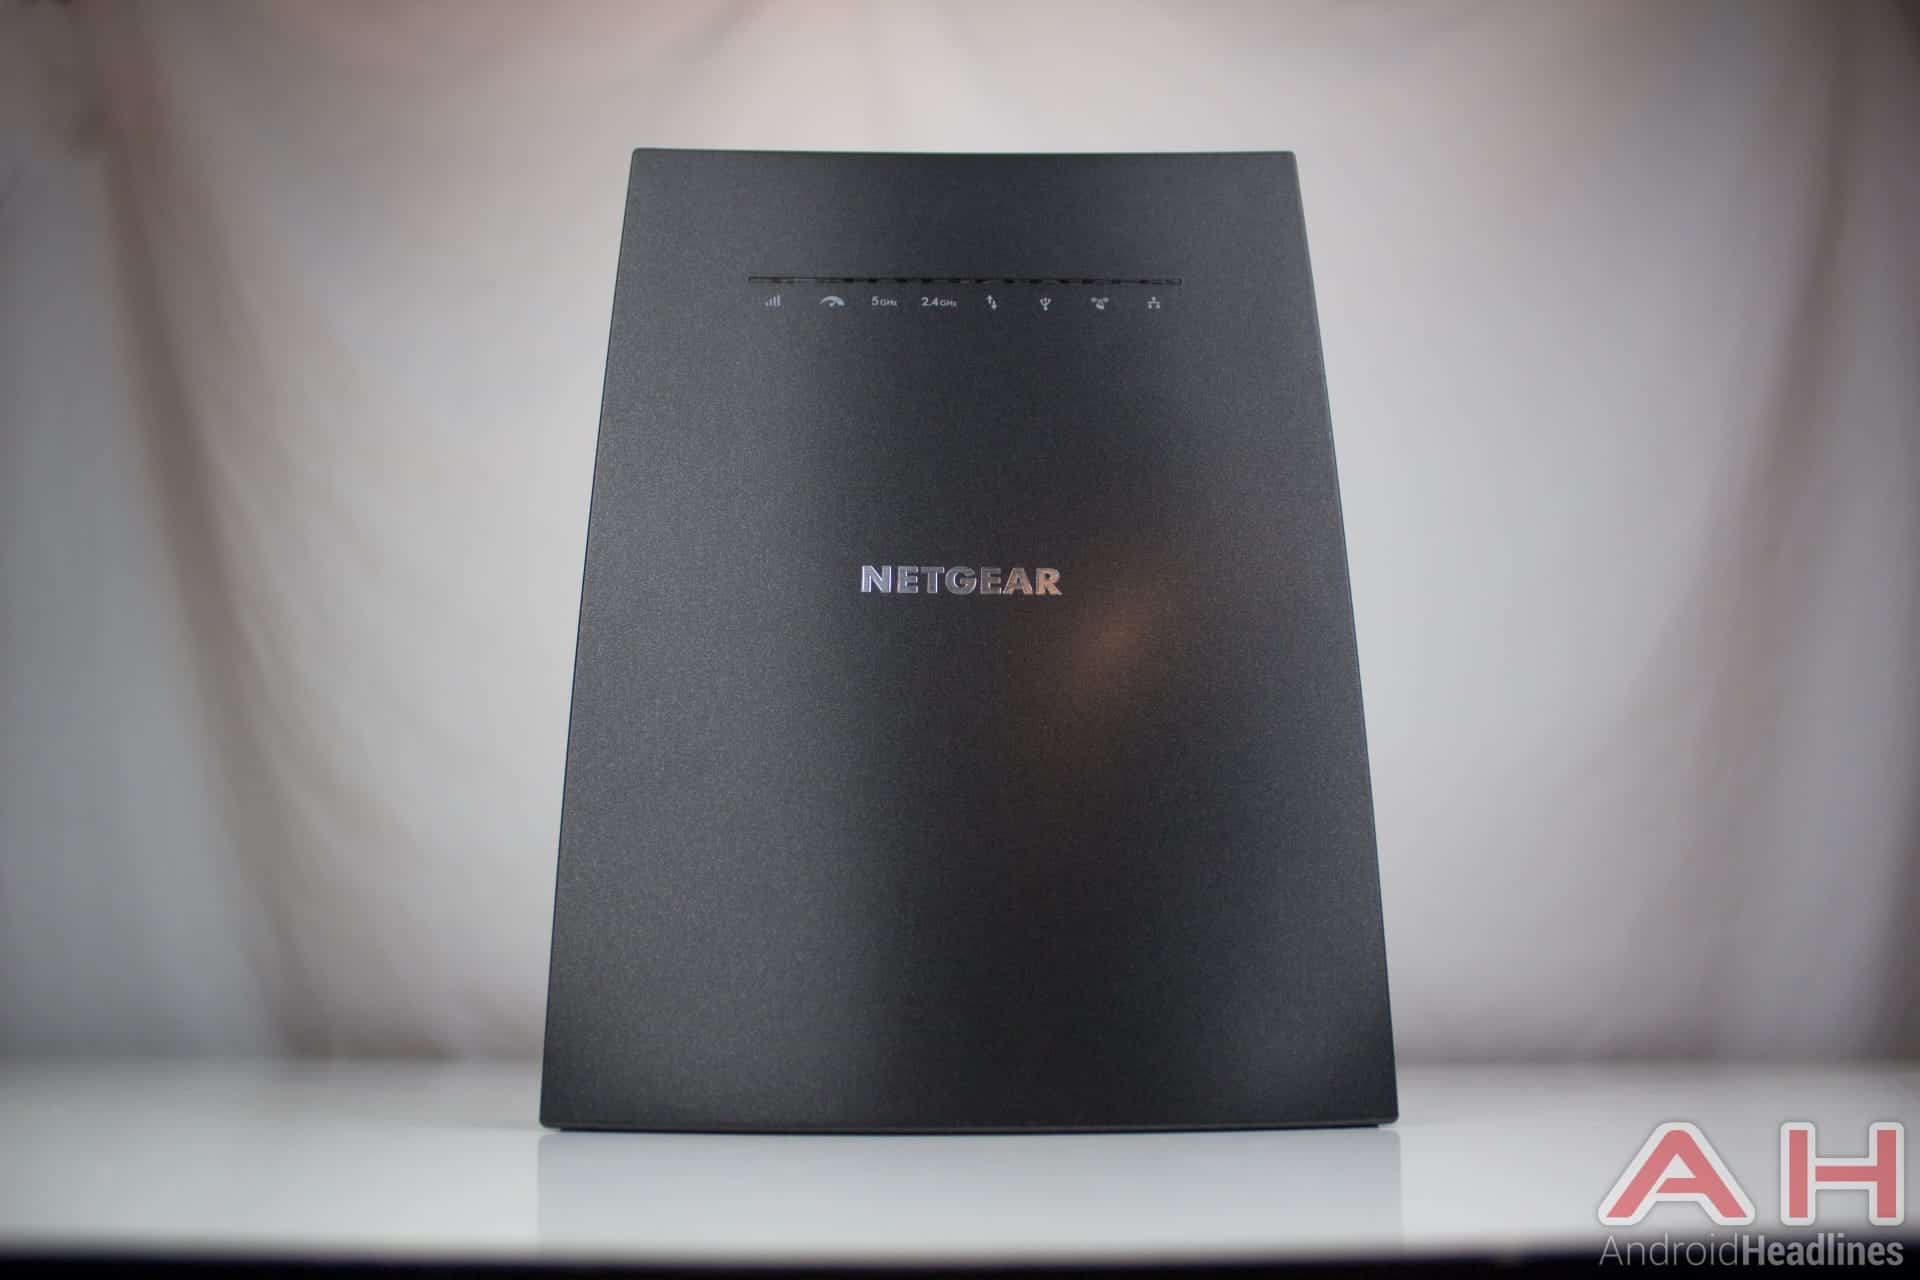 Netgear nighthawk x4s x6s review a simple fix for wi fi problems the nighthawk x6s ex8000 looks more like a traditional router with a long rectangular wedge shaped body thats designed to stand vertically greentooth Image collections